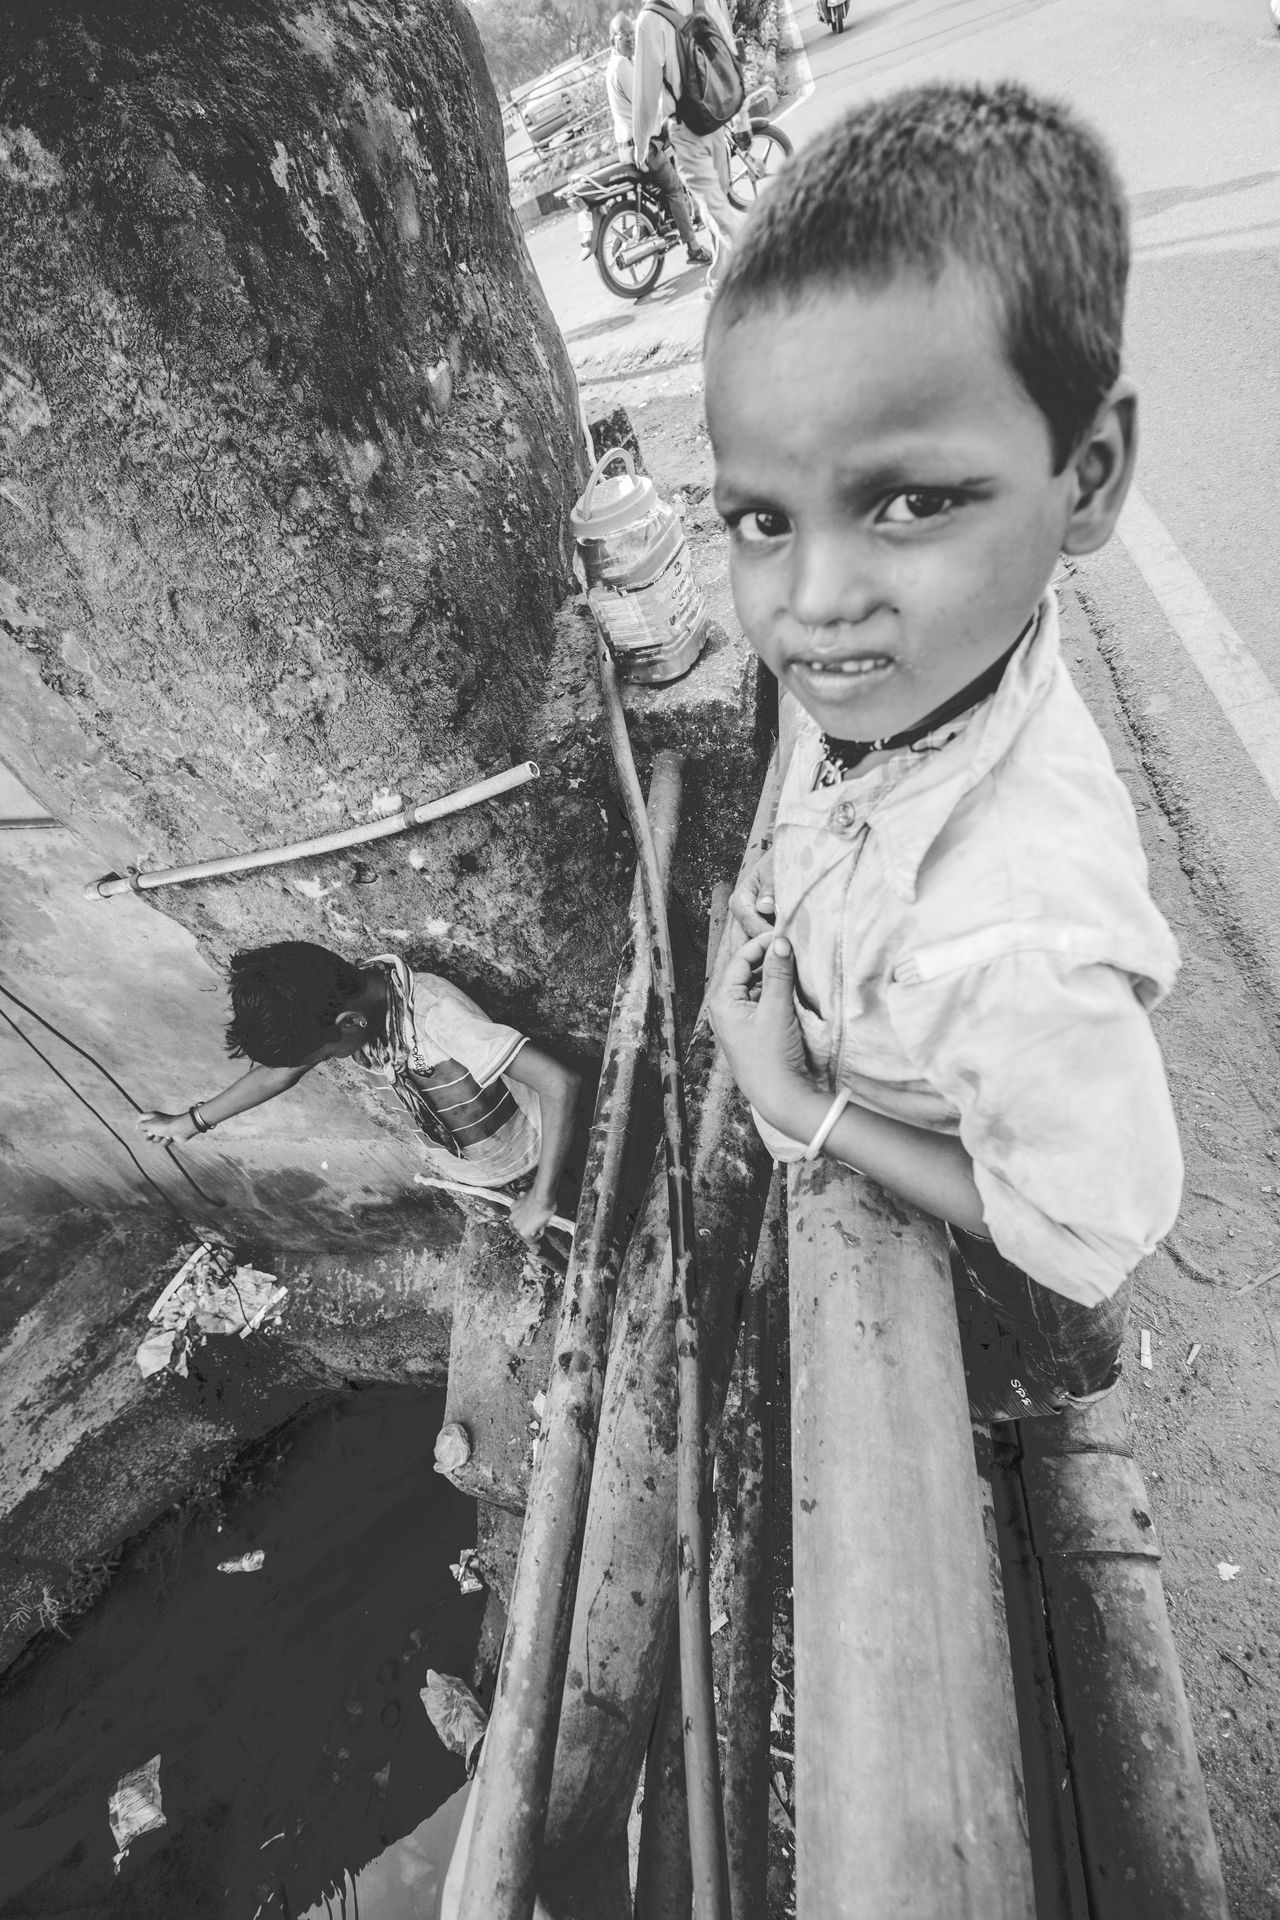 Black Black And White Black And White Collection  Children Documentary Documentary Photography Emotion Expression Fishing Goa India Joy Street Street Photography Streetphoto_bw The Street Photographer - 2016 EyeEm Awards